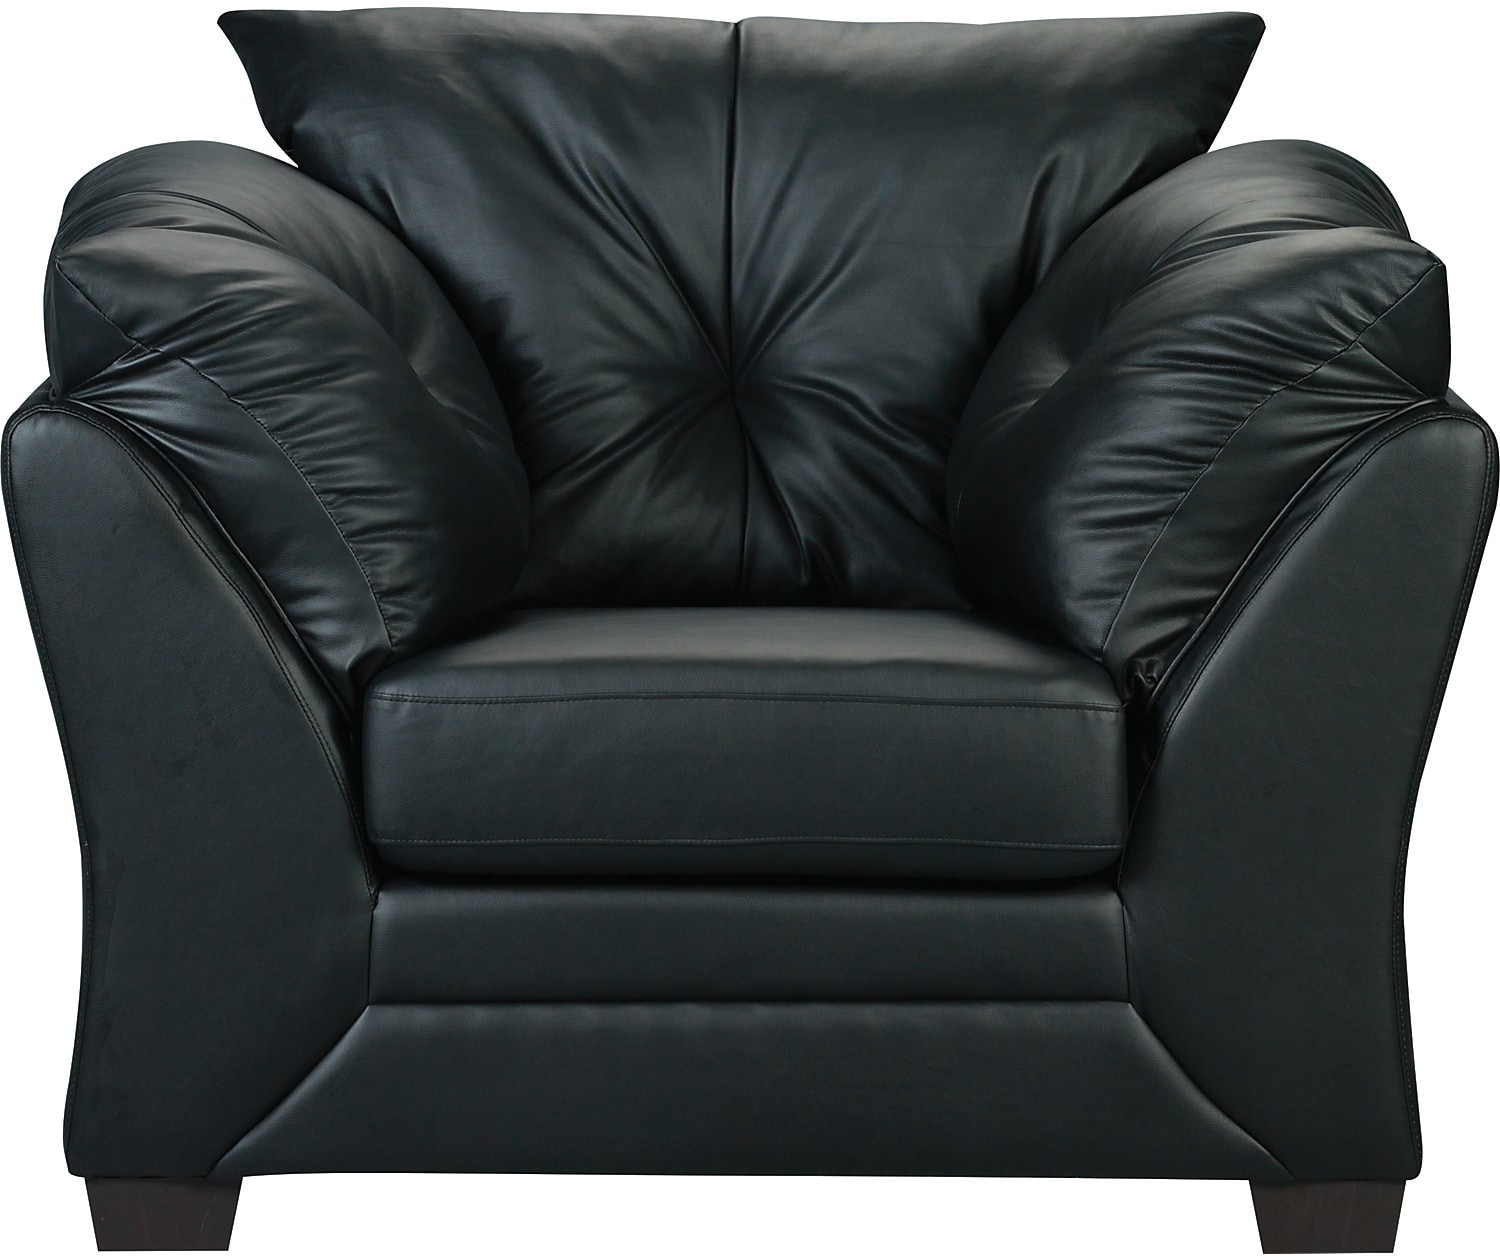 Max Faux Leather Chair - Black